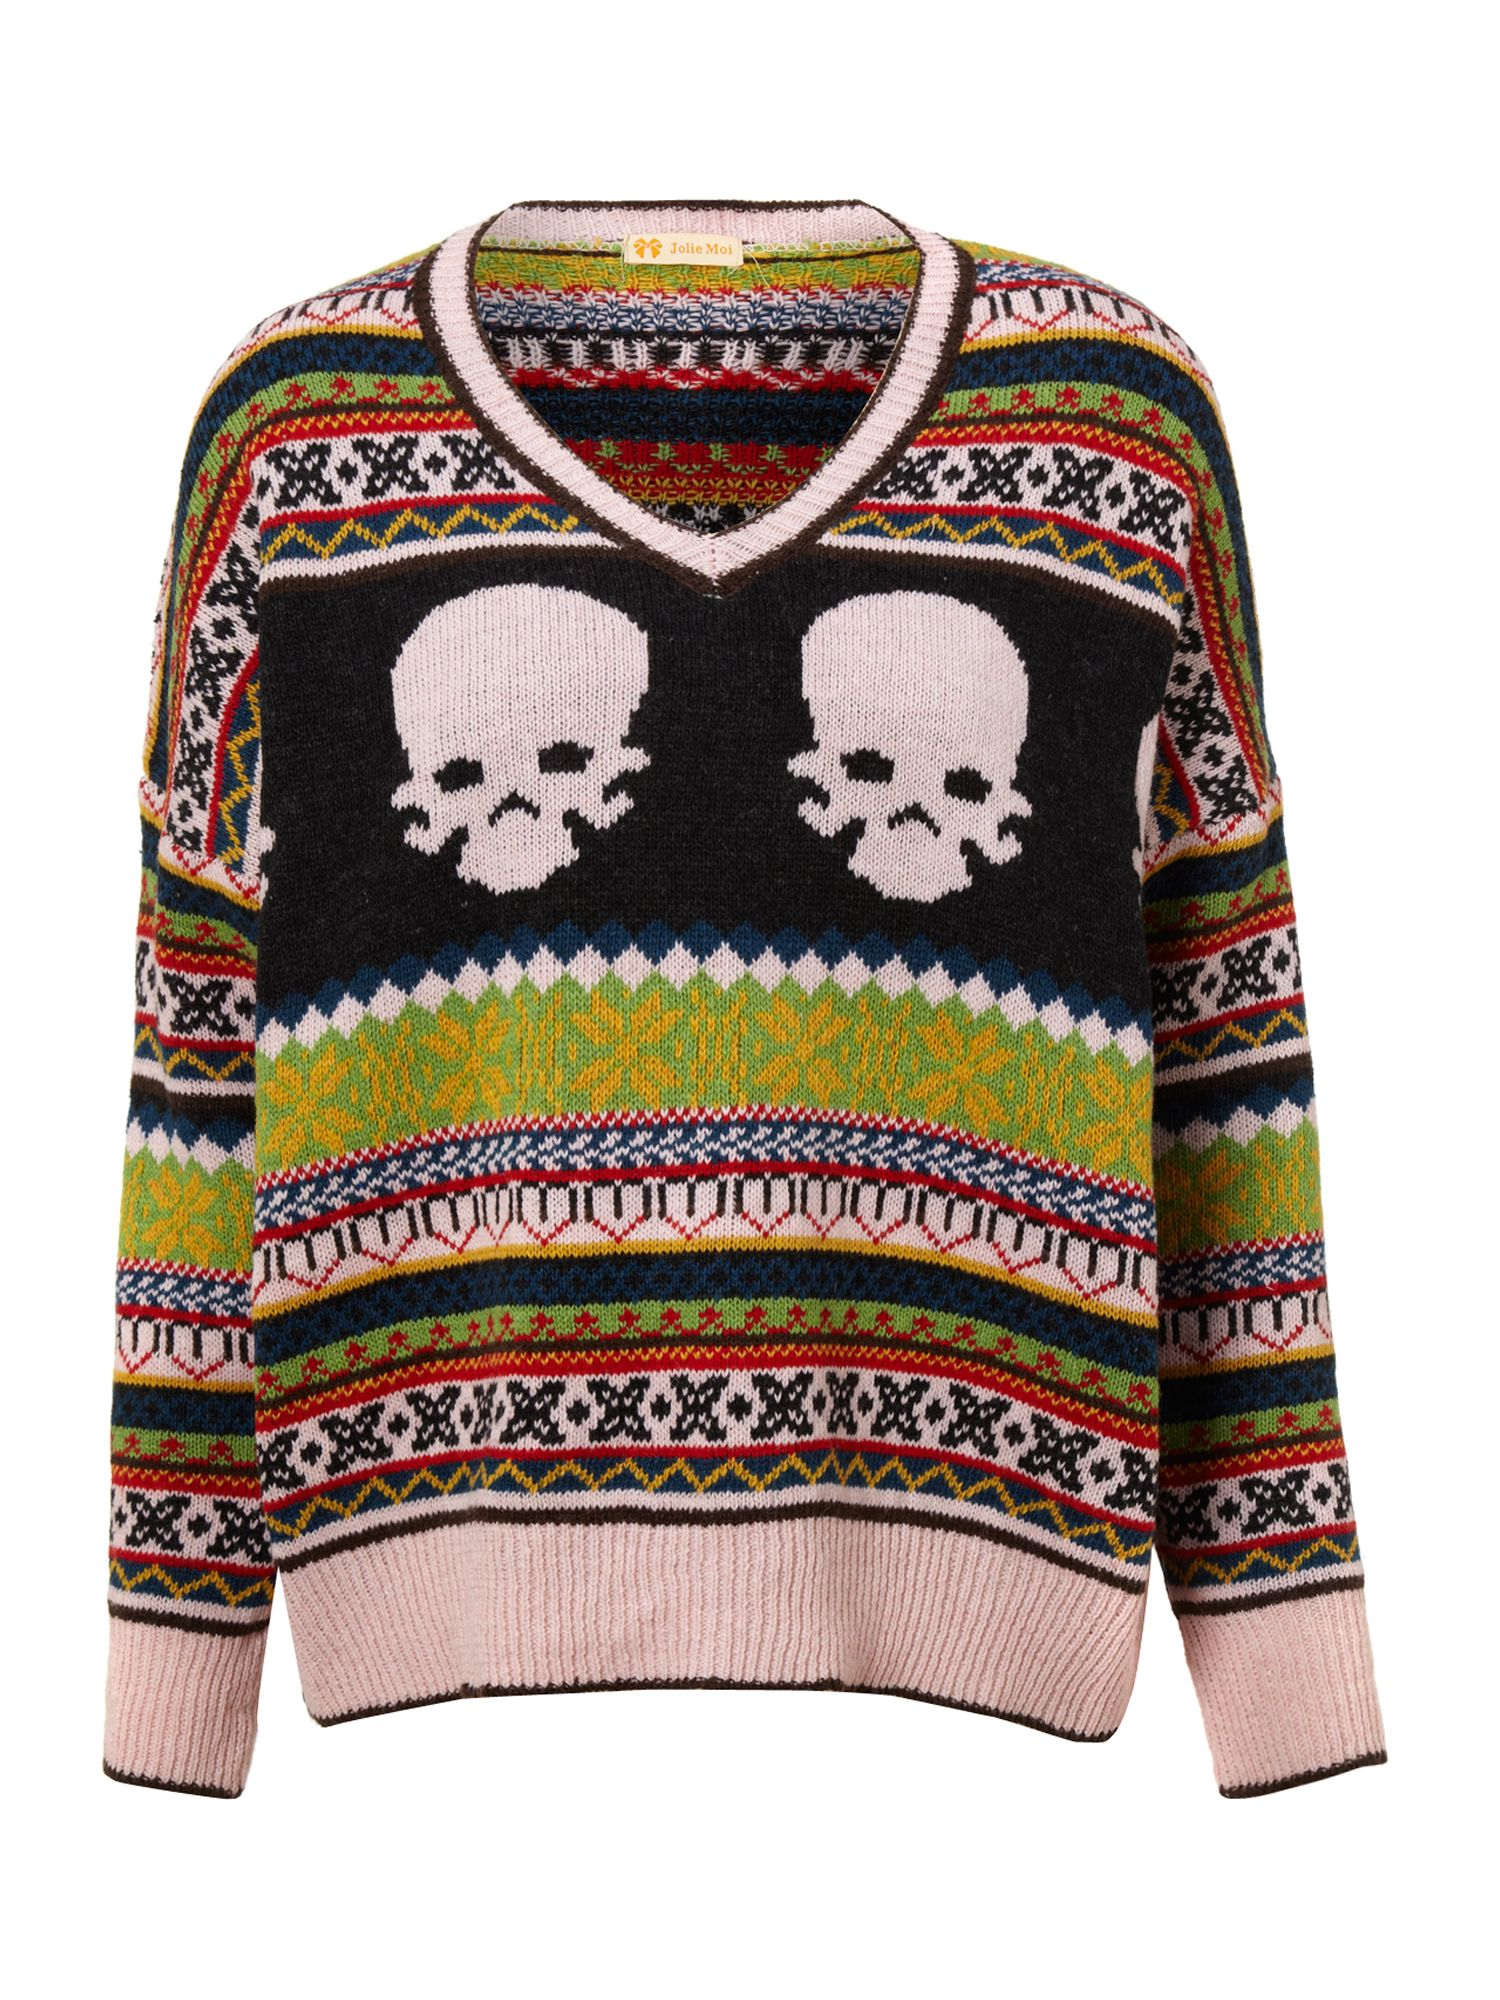 Skull print knitted jumper